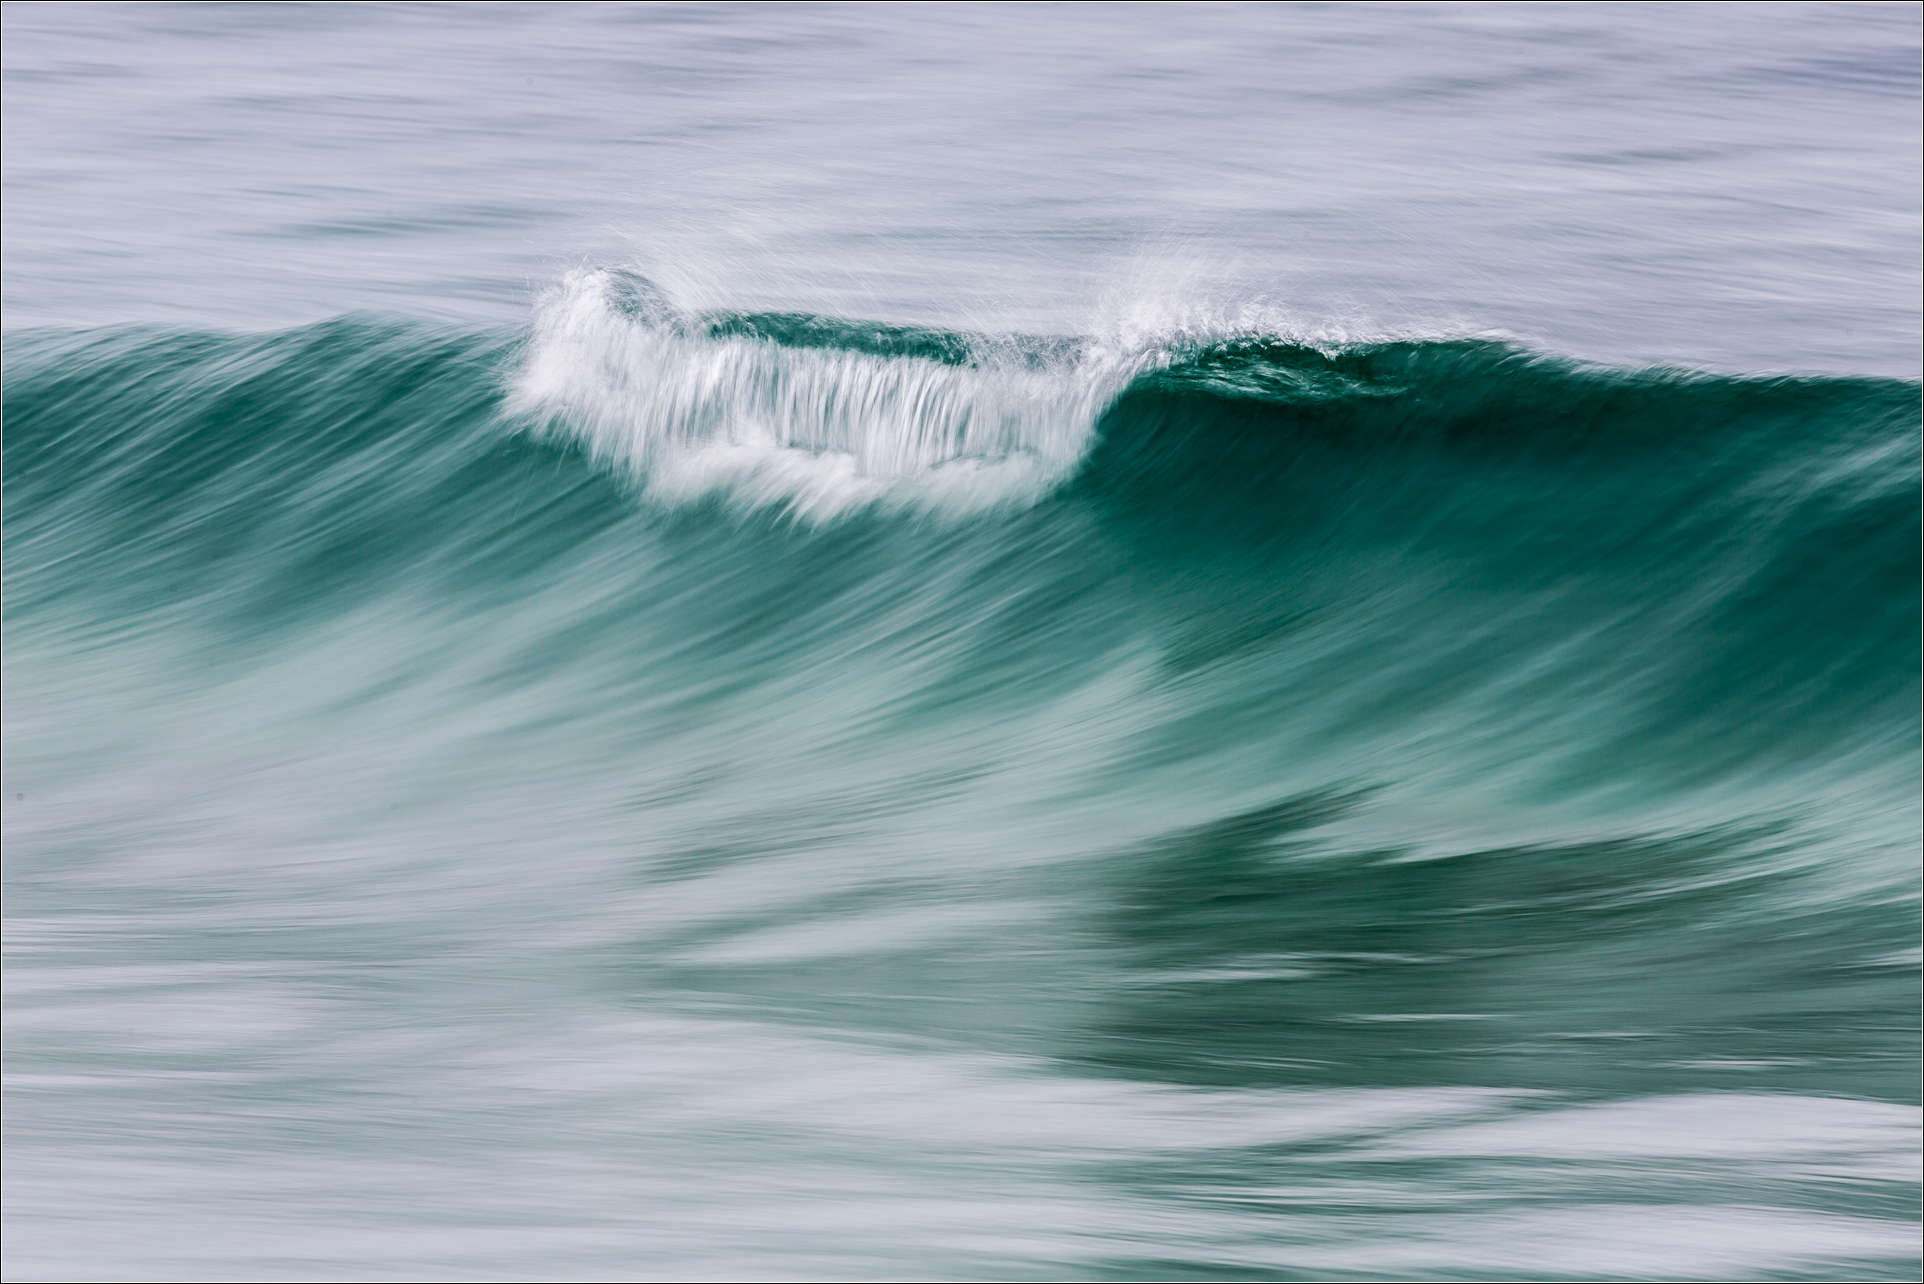 Wave form 2013 © Christopher Martin-1787